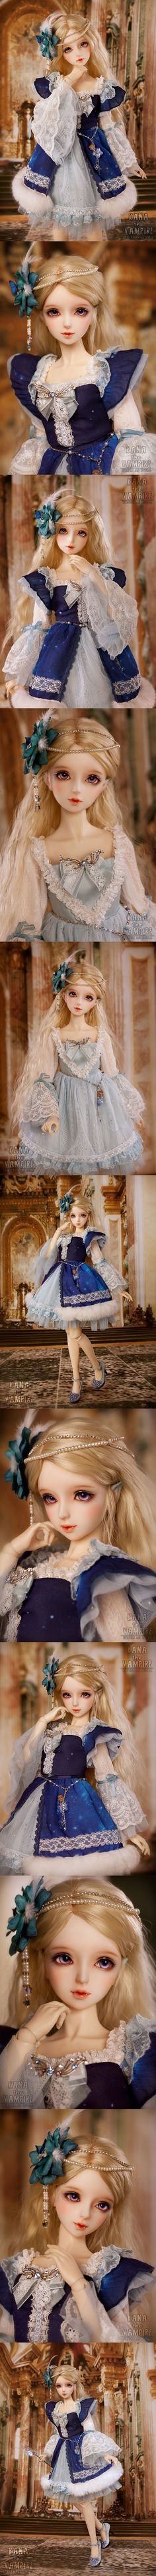 (AS Agency)BJD Limited Time Vampire kana Girl 58cm Ball-Jointed Doll_SD size doll_Angell Studio_DOLL_Ball Jointed Dolls (BJD) company-Legenddoll